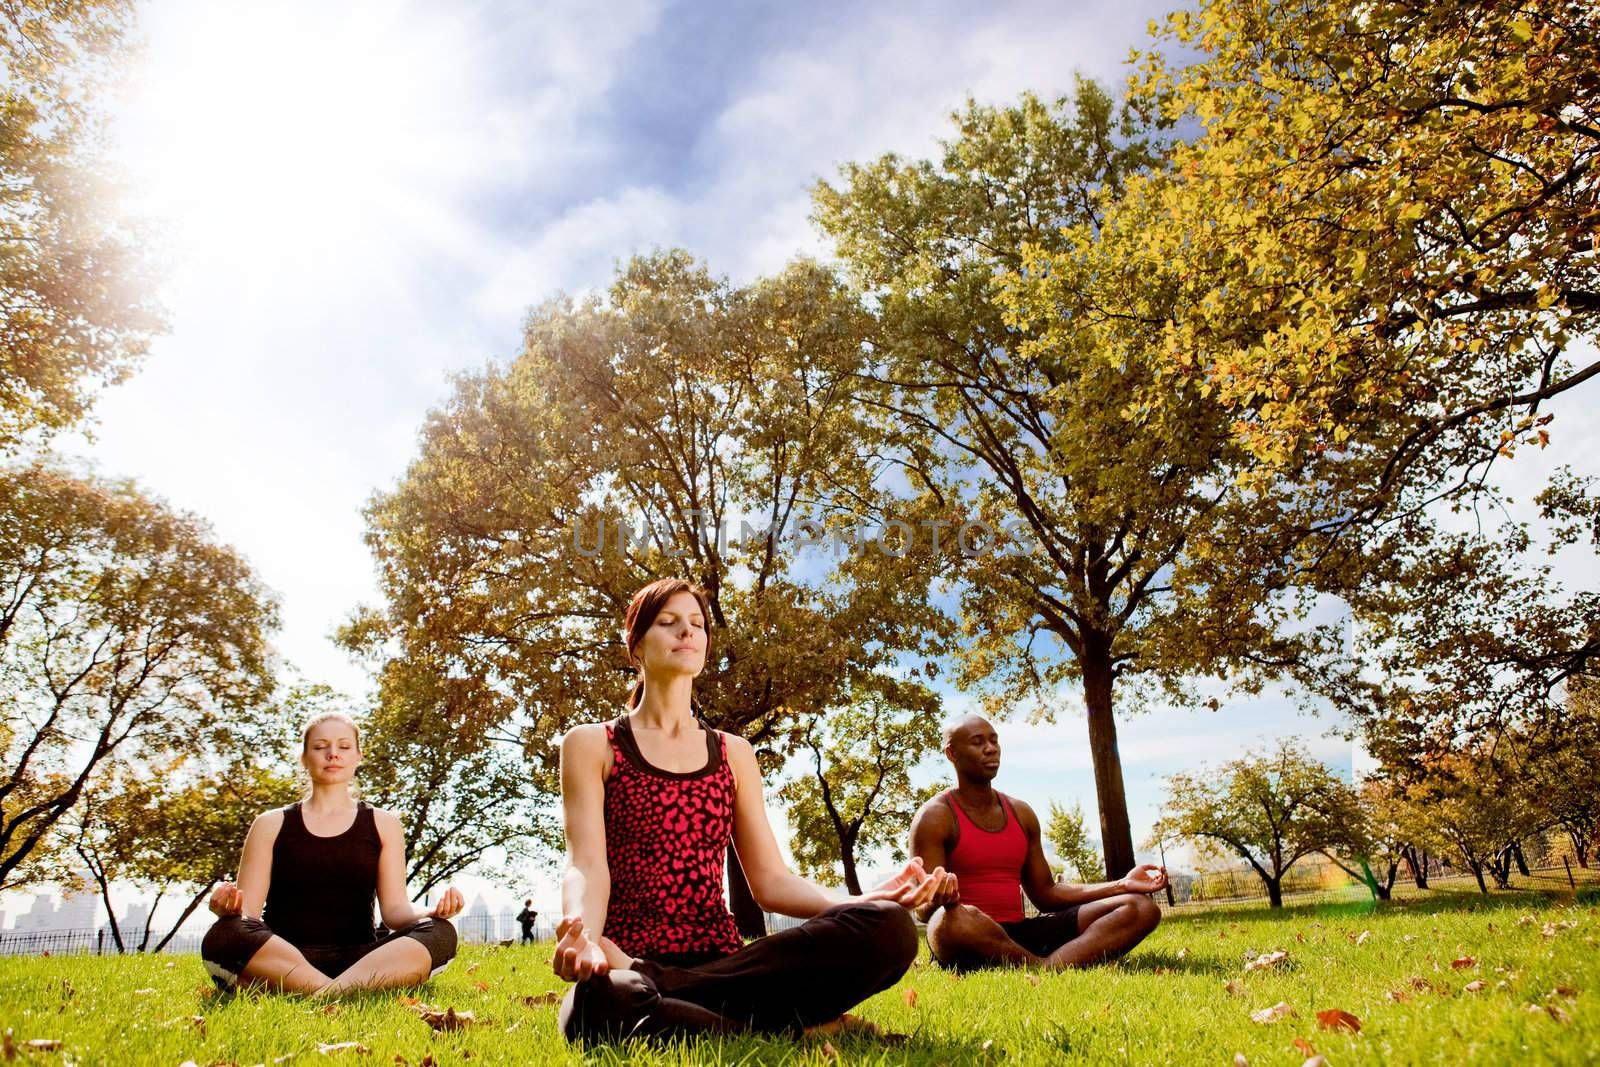 A group of people doing yoga in a city park